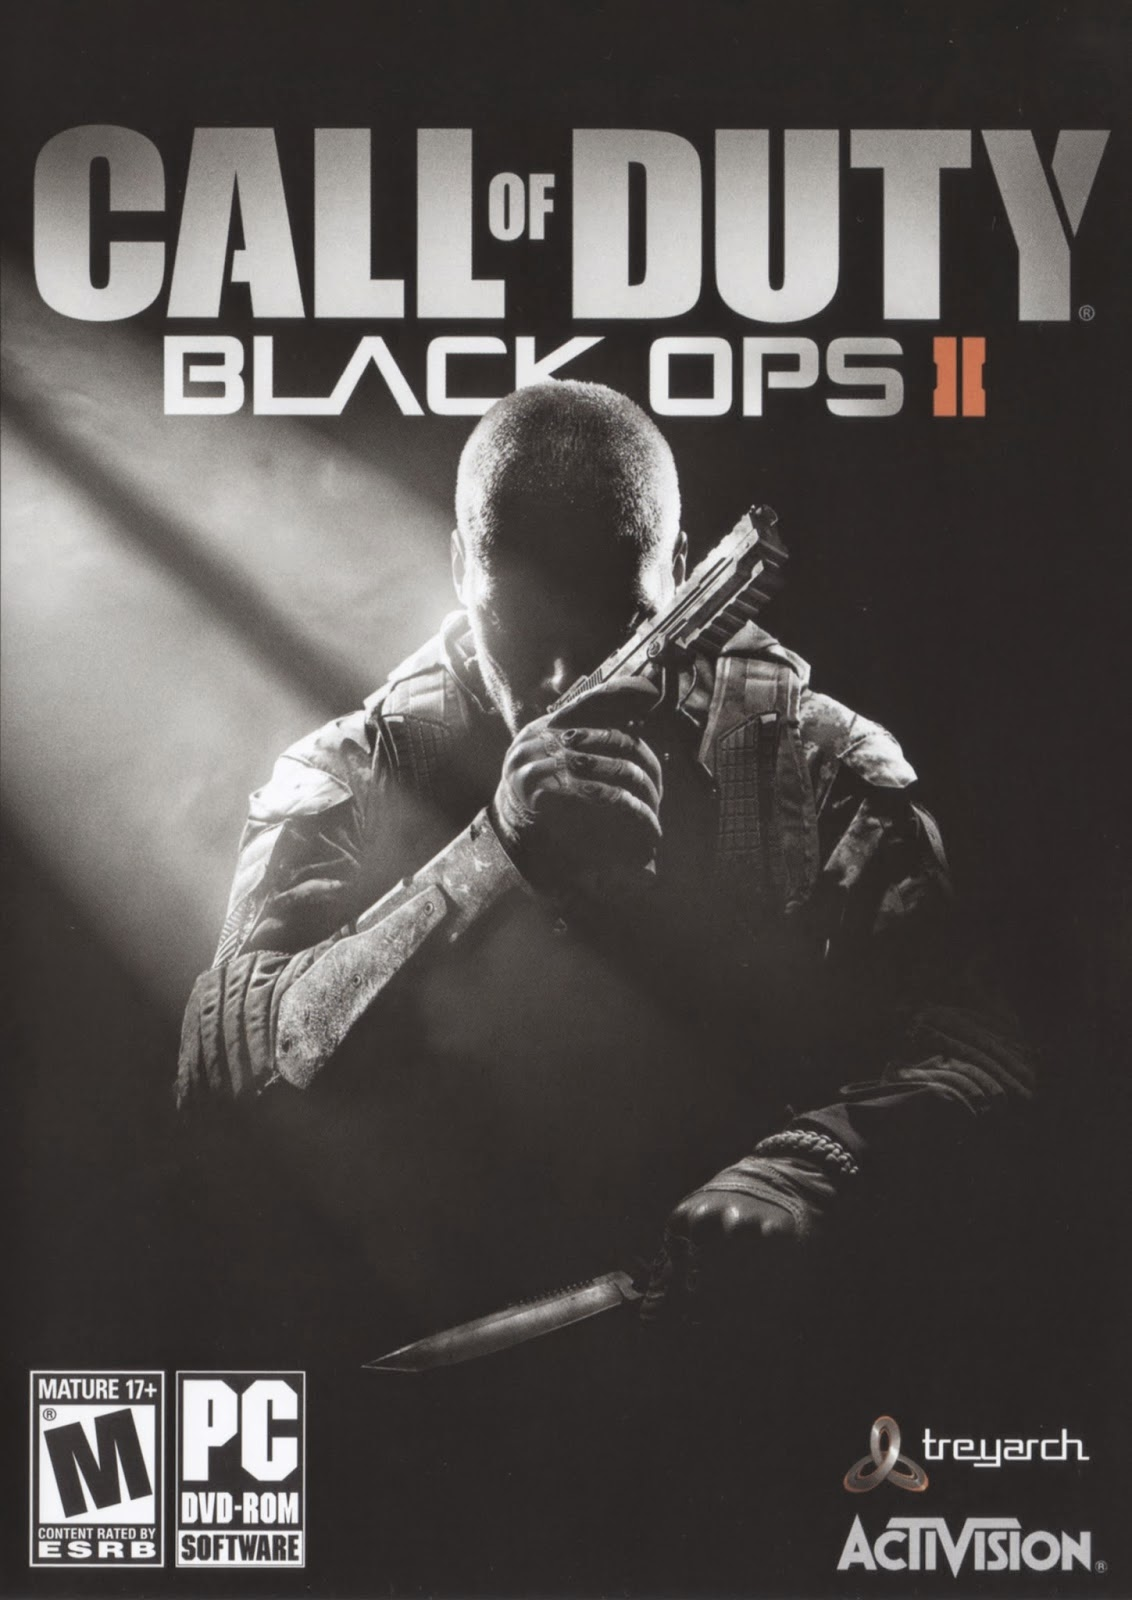 CALL OF DUTY BLACK OPS 2 SP+MP